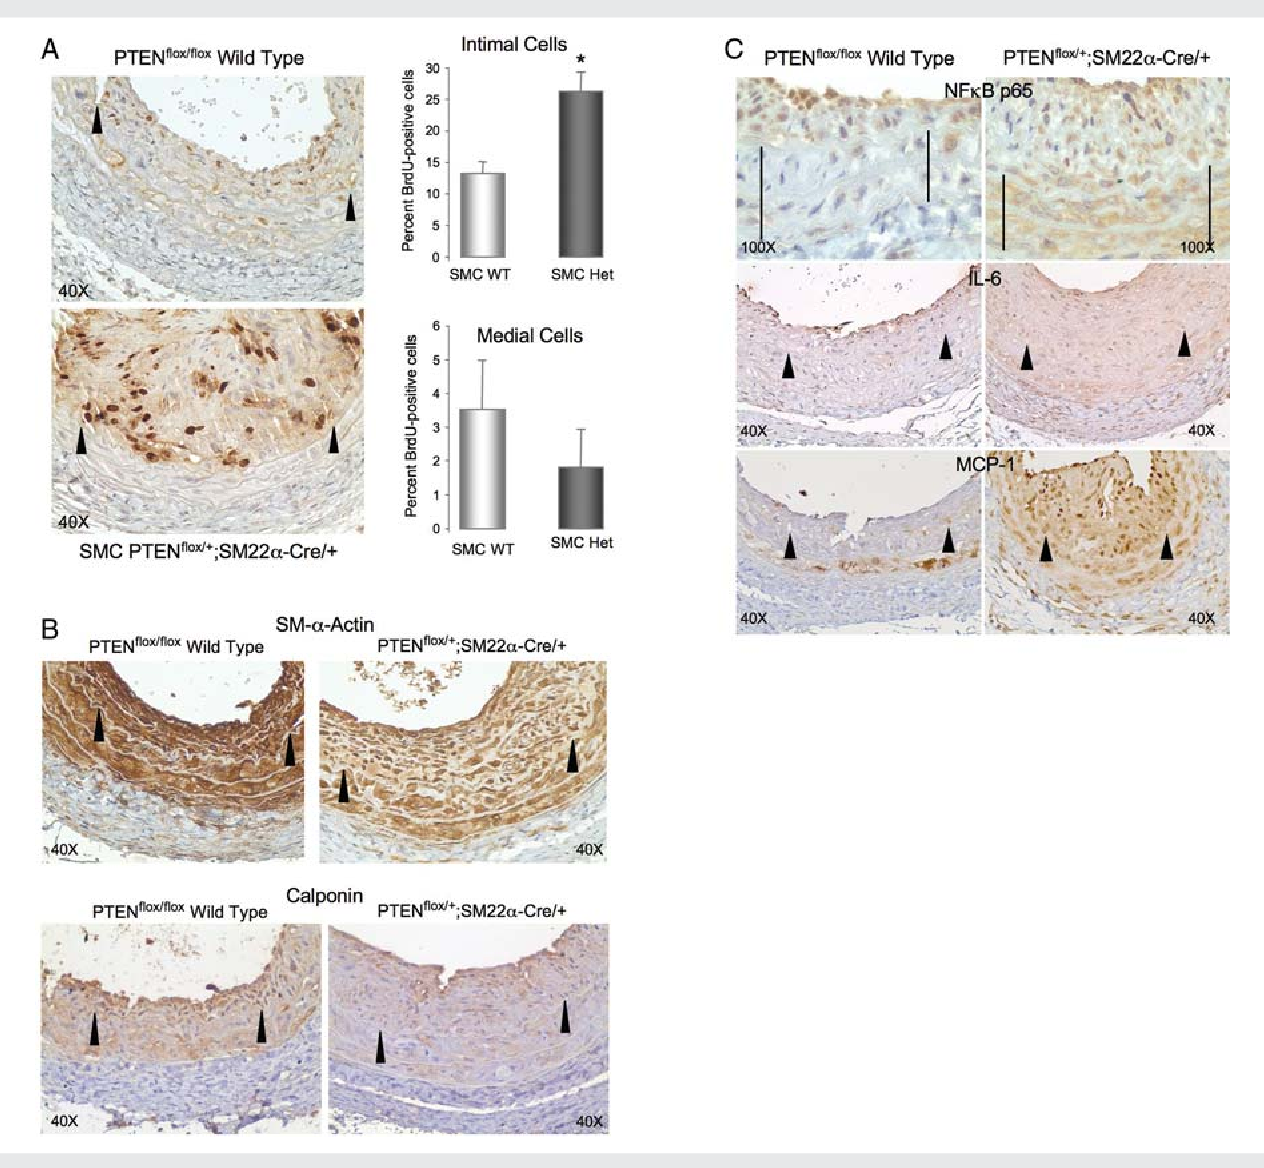 Figure 6 SMC-specific PTEN-deficient mutant mice exhibit increased intimal cell proliferation, reduced SM marker expression, and overexpression of NF-kB p65 and cytokines. (A) BrdU immunohistochemistry on injured left carotid arteries from wild-type (PTENfl/fl;þ/þ) and SMC-specific heterozygote (PTENfl/þ;SM22a-Creþ/2) mice (brown nuclei). Percent replicating cells was determined independently for the arterial media and intima and data presented in the graphs as means+ SE; *different from wild-type; P , 0.05. (B and C ) Immunohistochemistry for SM-a-actin (B, upper), calponin (B, lower), NF-kB p65 (C, upper), IL-6 (C, middle), or MCP-1 (C, lower) on injured left carotid arteries from wild-type (PTENfl/fl;þ/þ) and SMC-specific heterozygote (PTENfl/þ;SM22a-Creþ/2) mice (brown reaction colour). Arrowheads, internal elastic lamina; lines in C, the arterial media; n ¼ 4.